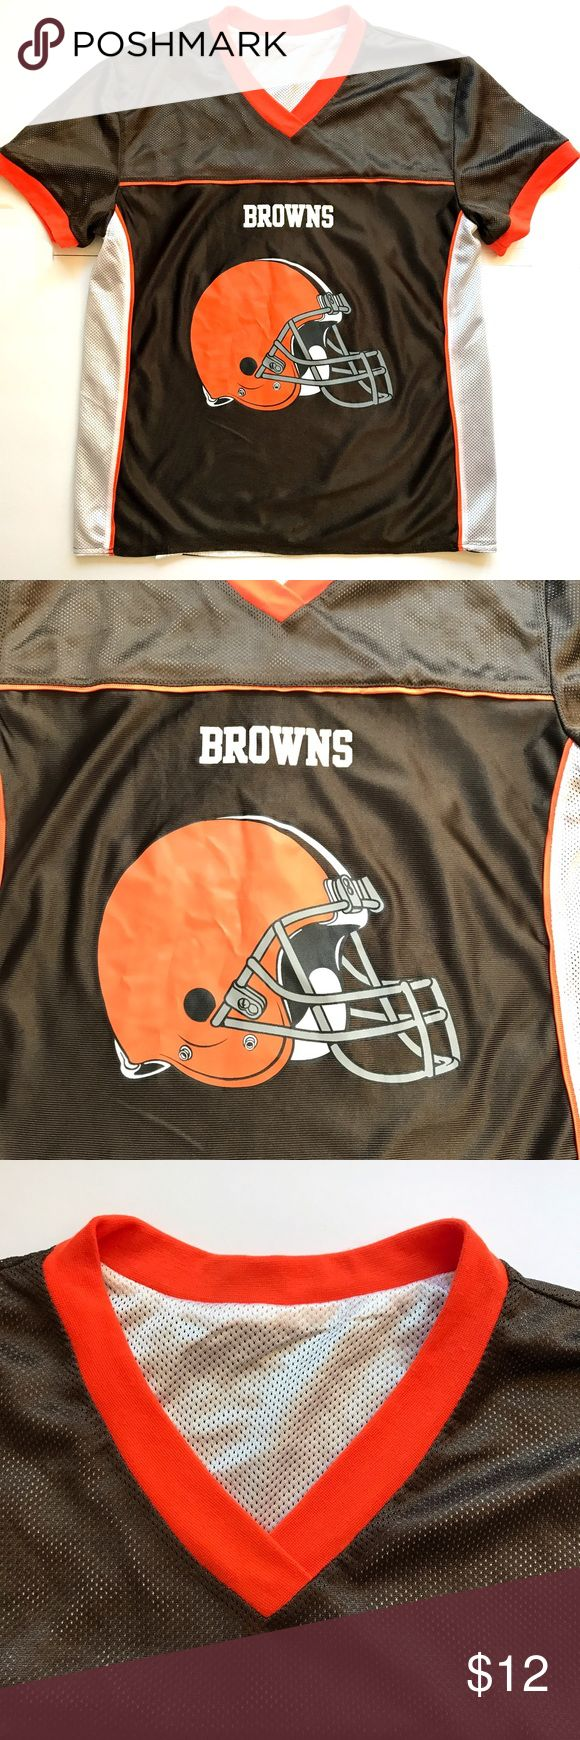 "NFL Browns jersey Browns NFL jersey!  •D E T A I L S•  Size: Small (Adult) Color: Brown, white, orange Chest: 19""  laid flat Length: 25"" Material: 100% Polyester Description: Show your team spirit in this like-new athletic short sleeve jersey for the Browns NFL team! Graphics on front and back. You can easily add a name to the back if desired. Soft and comfortable. Machine wash. Shirts"